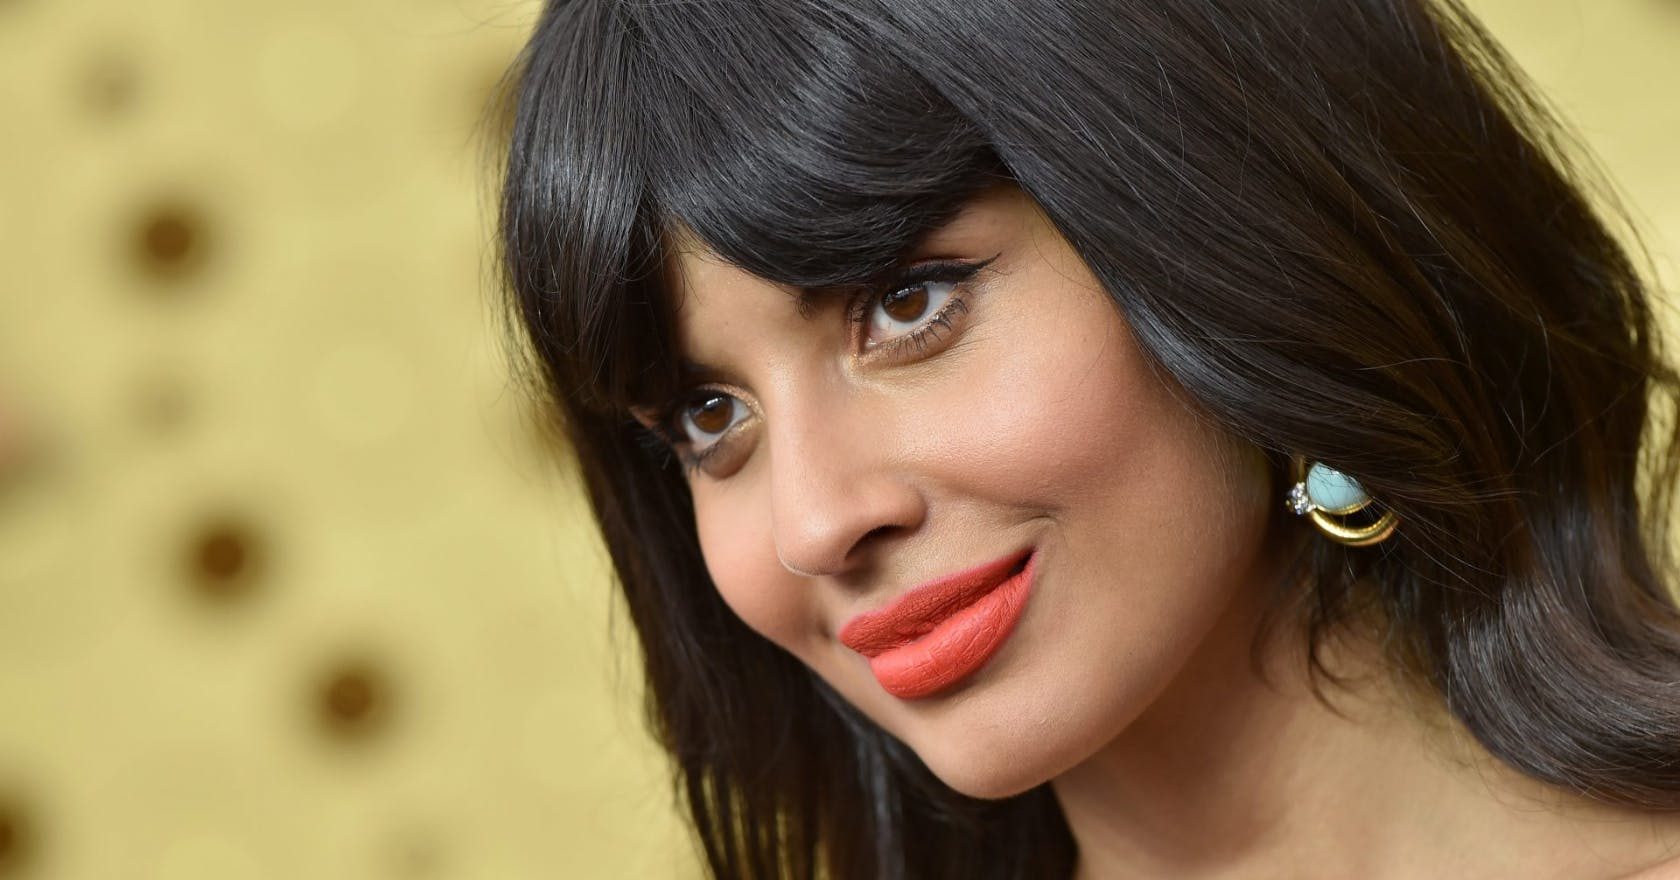 Jameela Jamil has some questions for you about body image